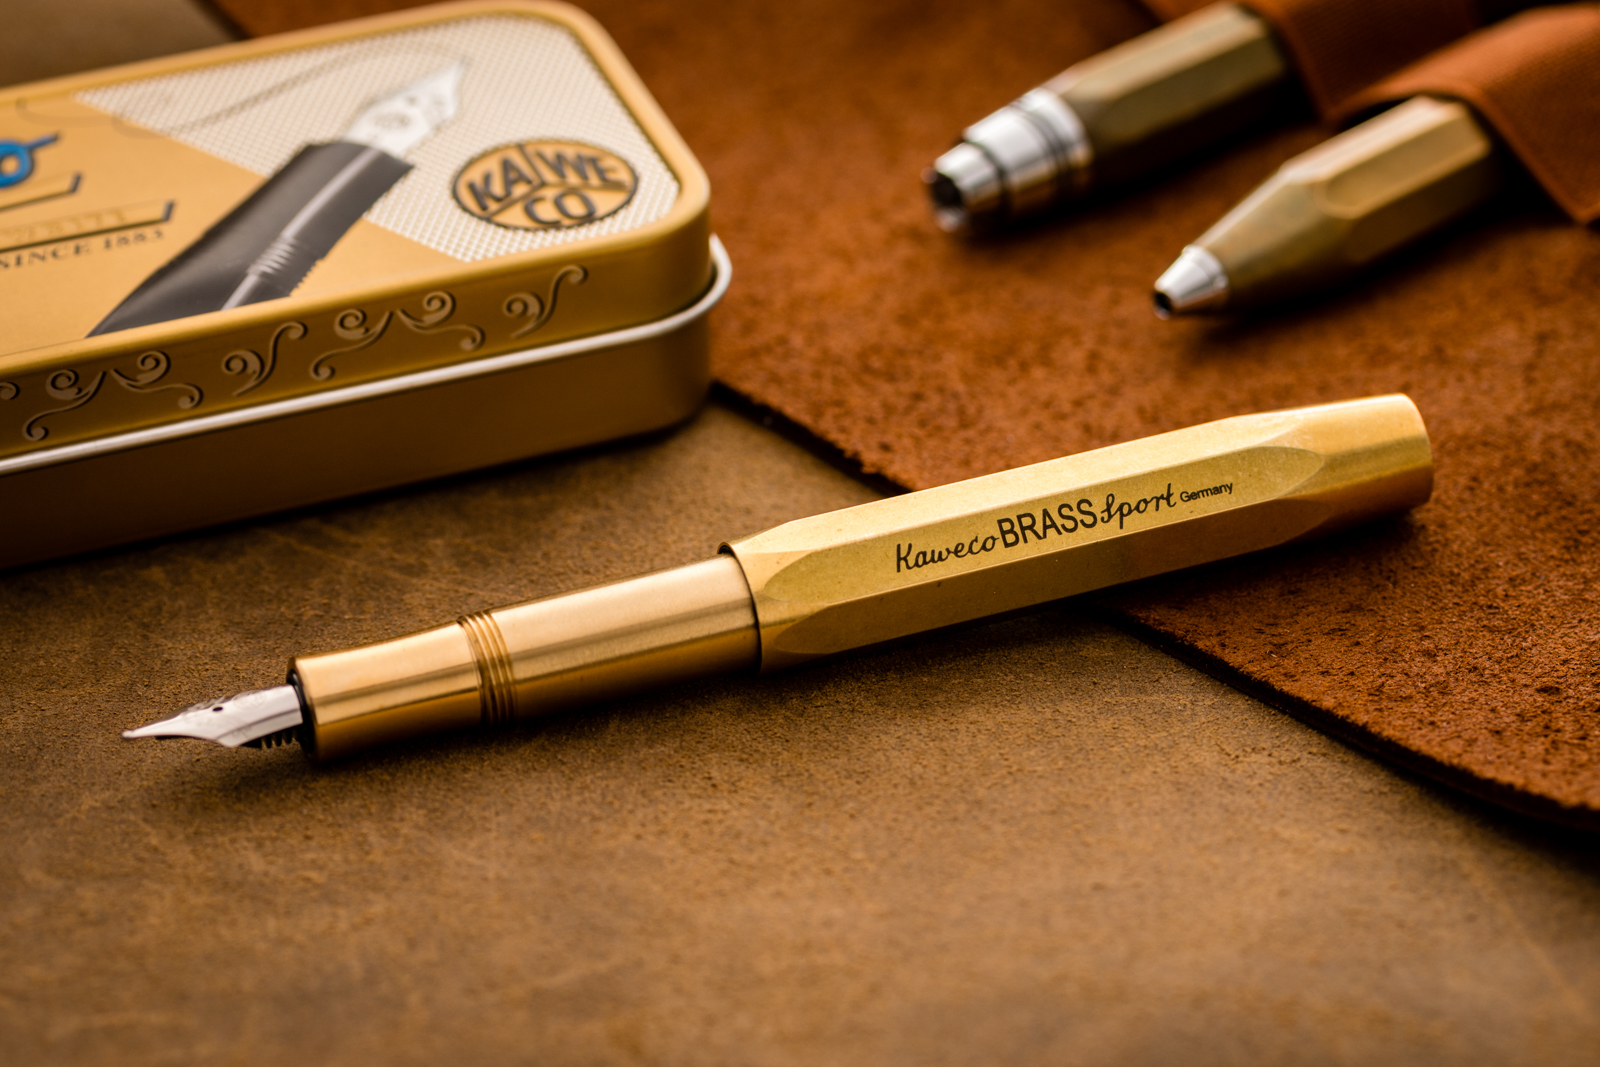 Kaweco - Brass Sport Fountain Pen